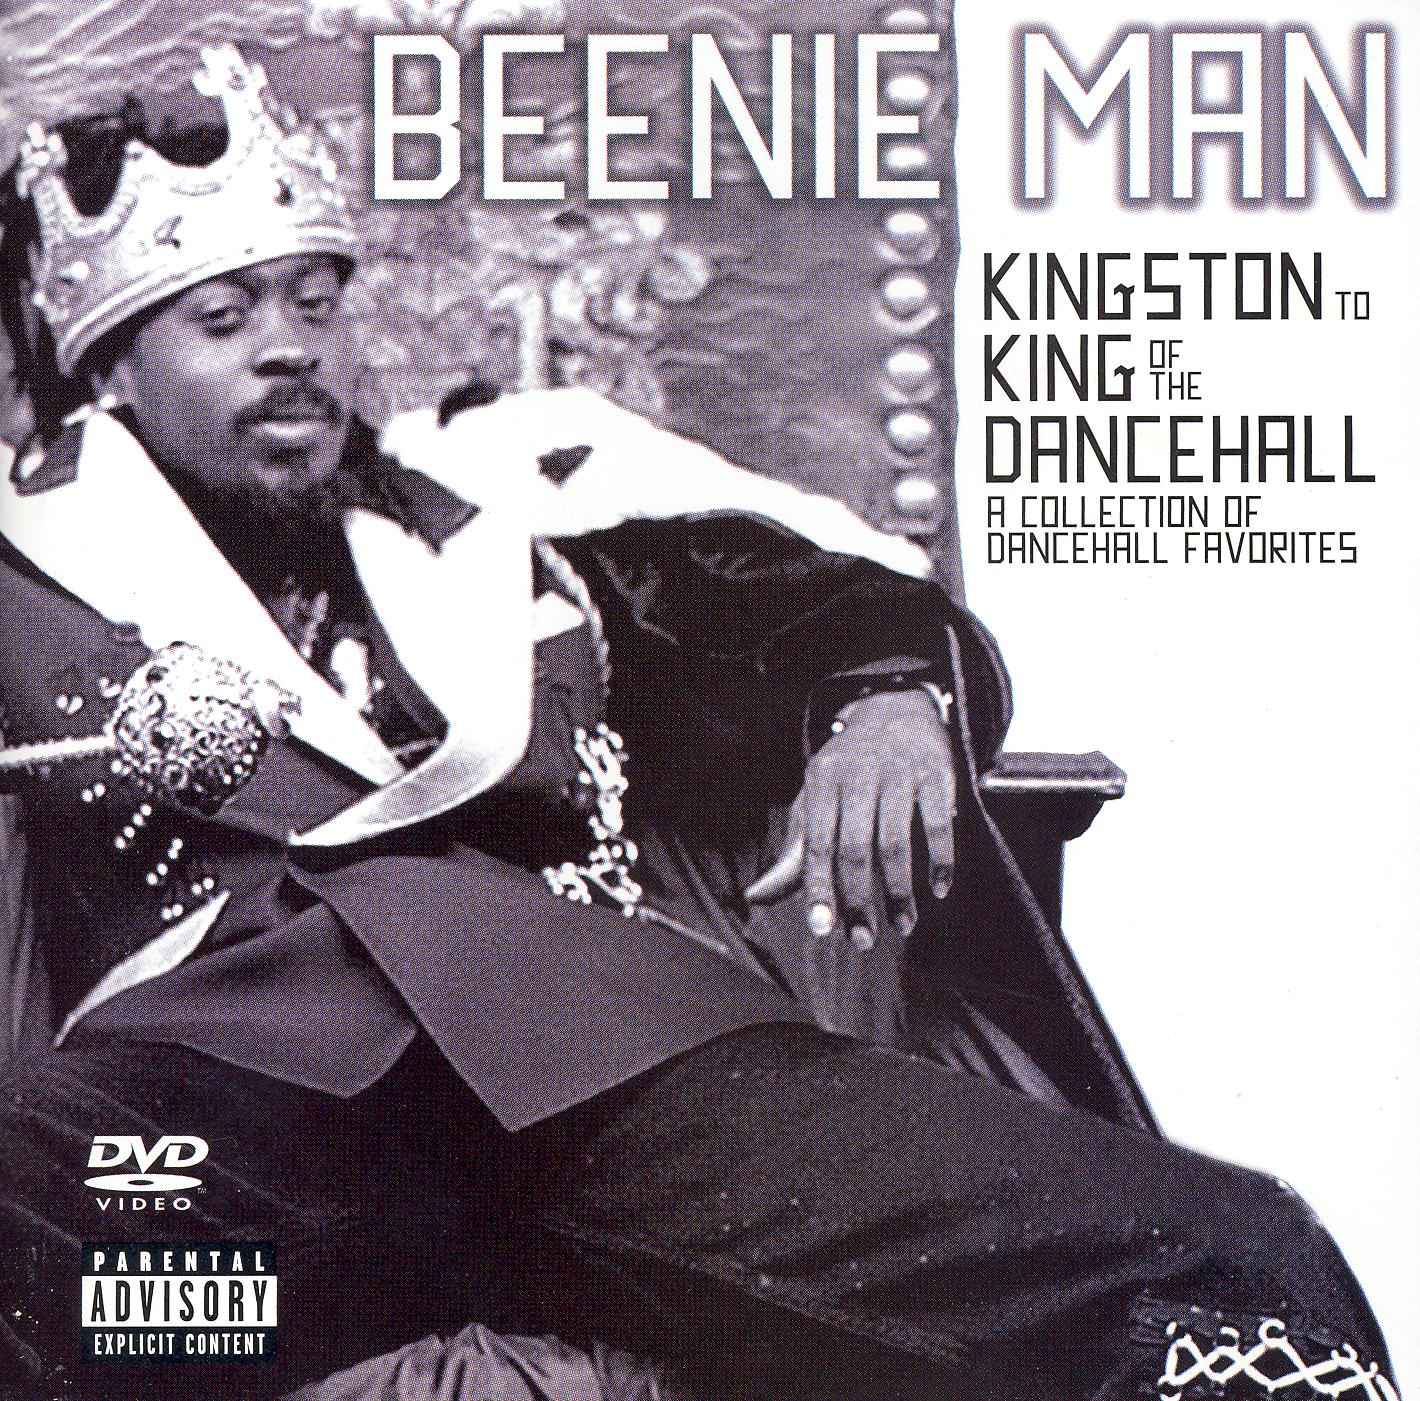 Beenie Man: Kingston to King of the Dancehall - A Collection of Dancehall Favorites